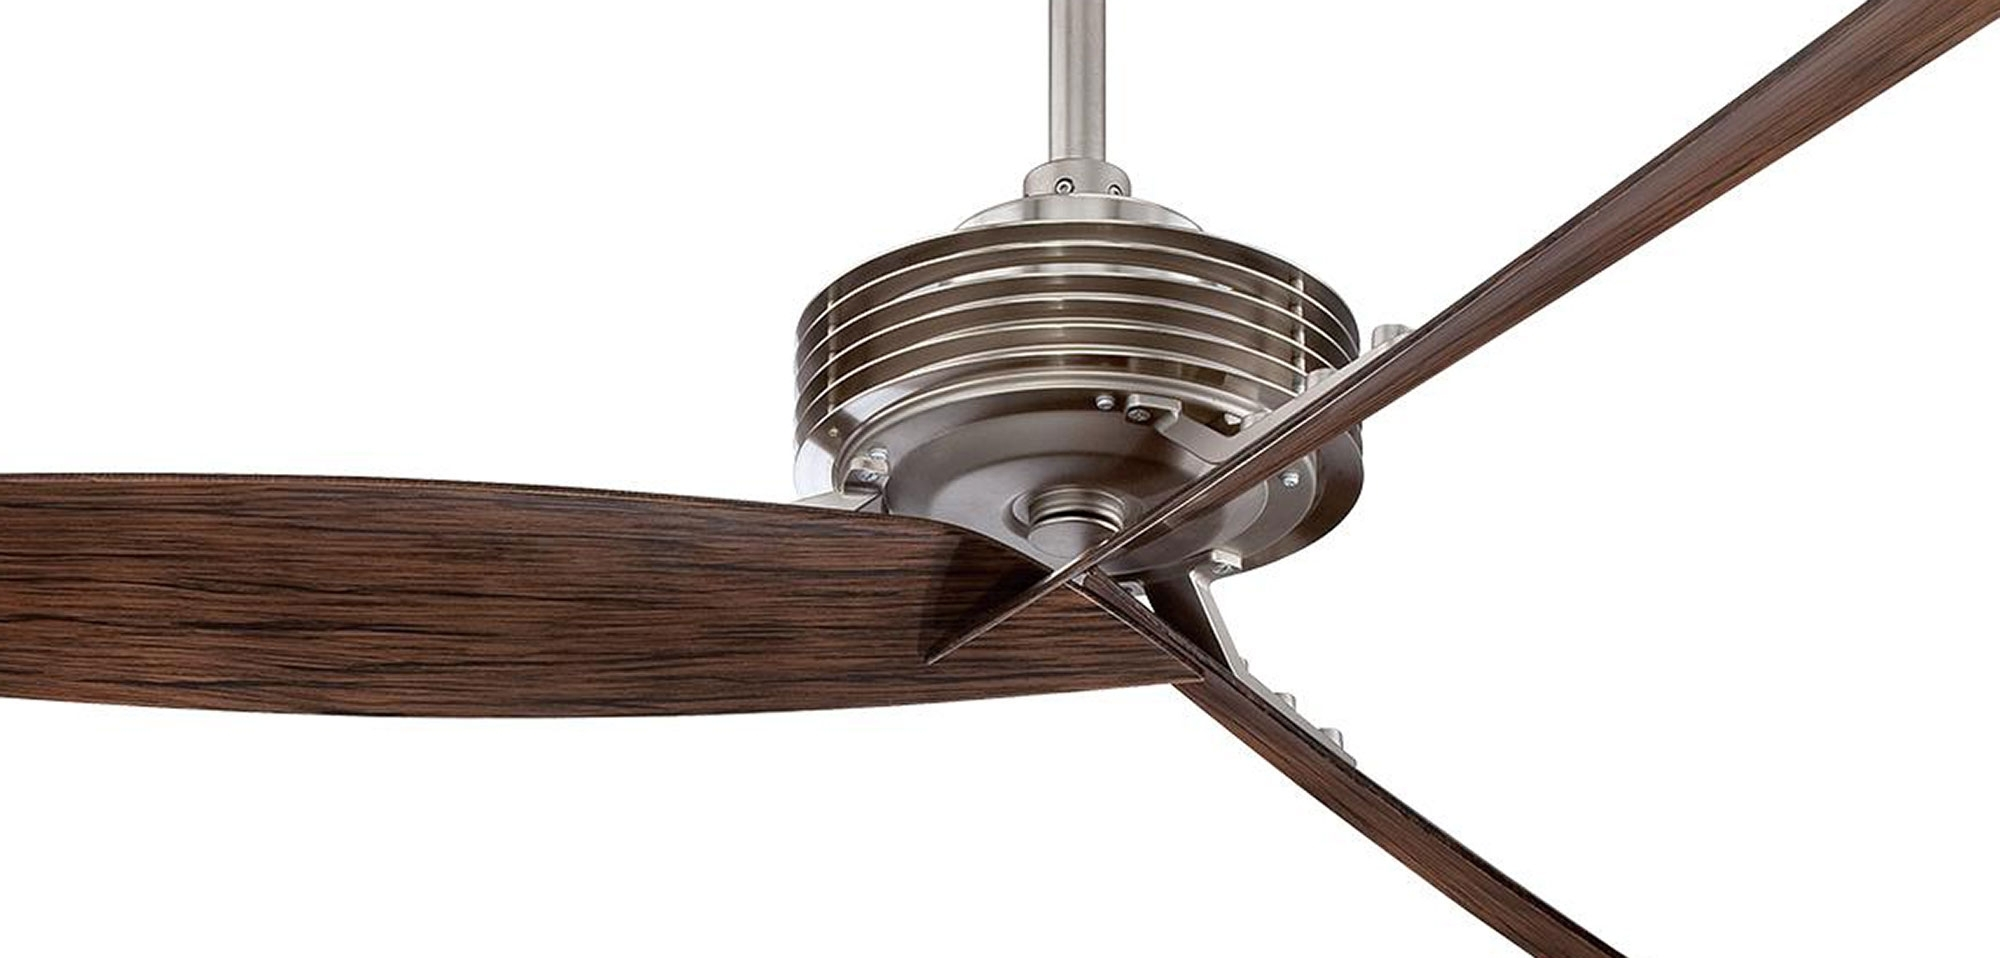 Preferred Ceiling: Awesome Rustic Outdoor Ceiling Fans Rustic Ceiling Fans Regarding Unique Outdoor Ceiling Fans (View 8 of 20)